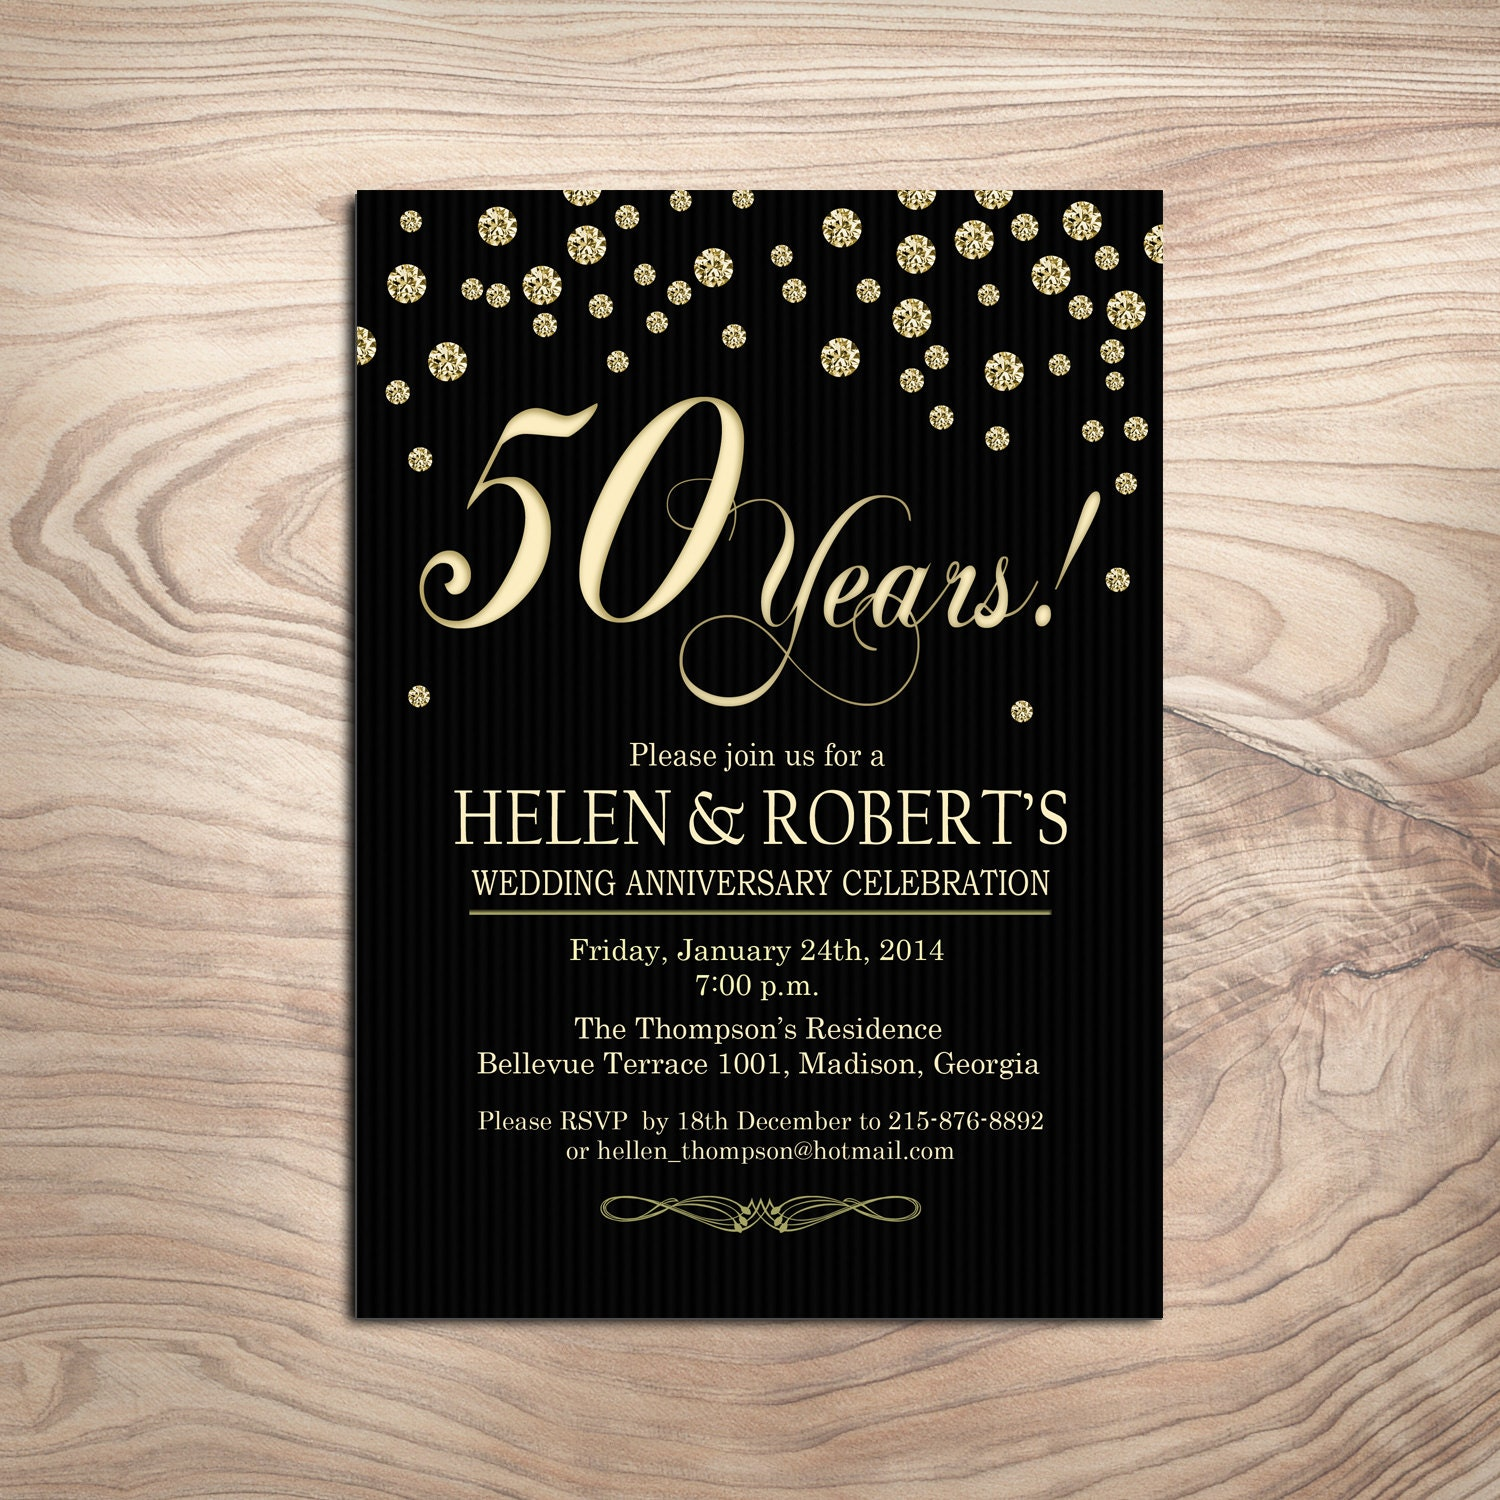 50th gold black wedding anniversary invitation digital - Wedding anniversary invitations ...